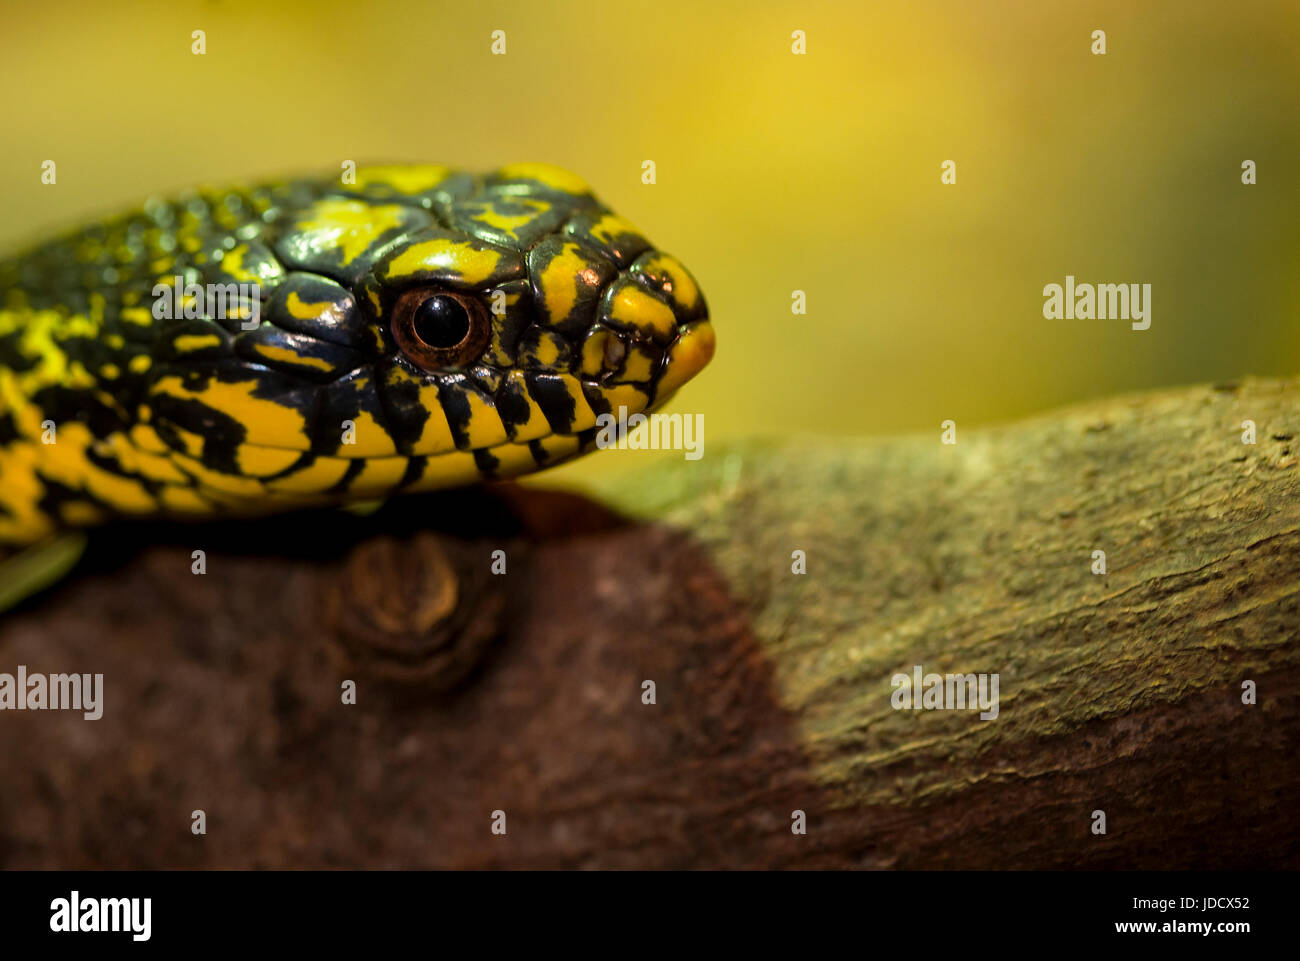 A Head shot of a King Rat Snake - Stock Image